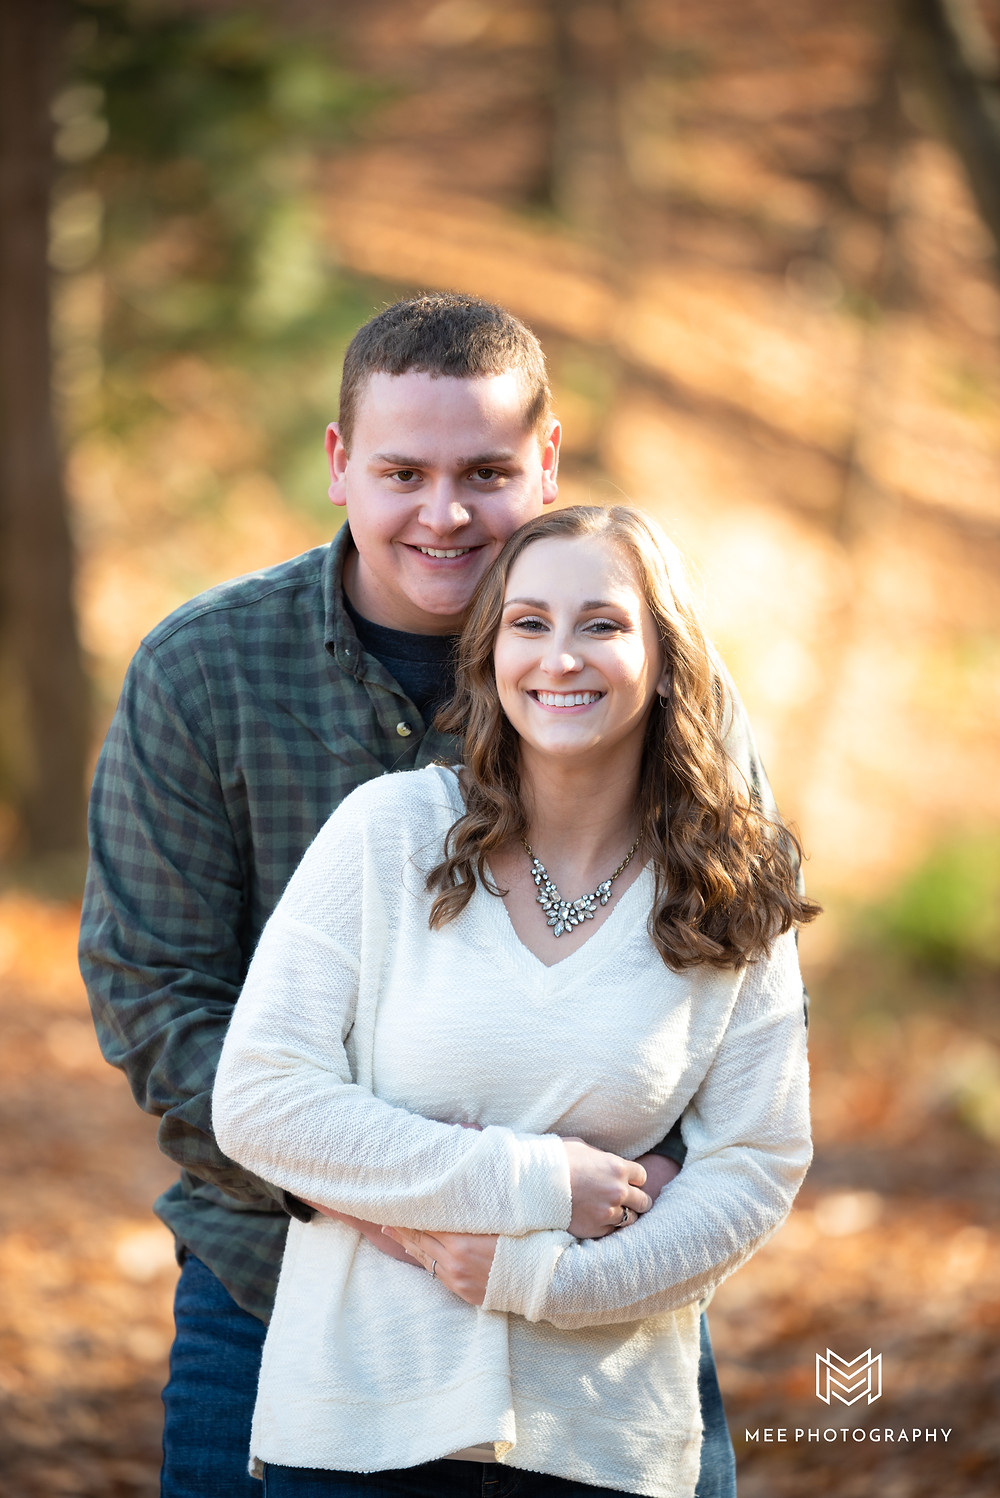 Girl wearing a white sweater and guy wearing a plaid shirt during their fall engagement session in the woods